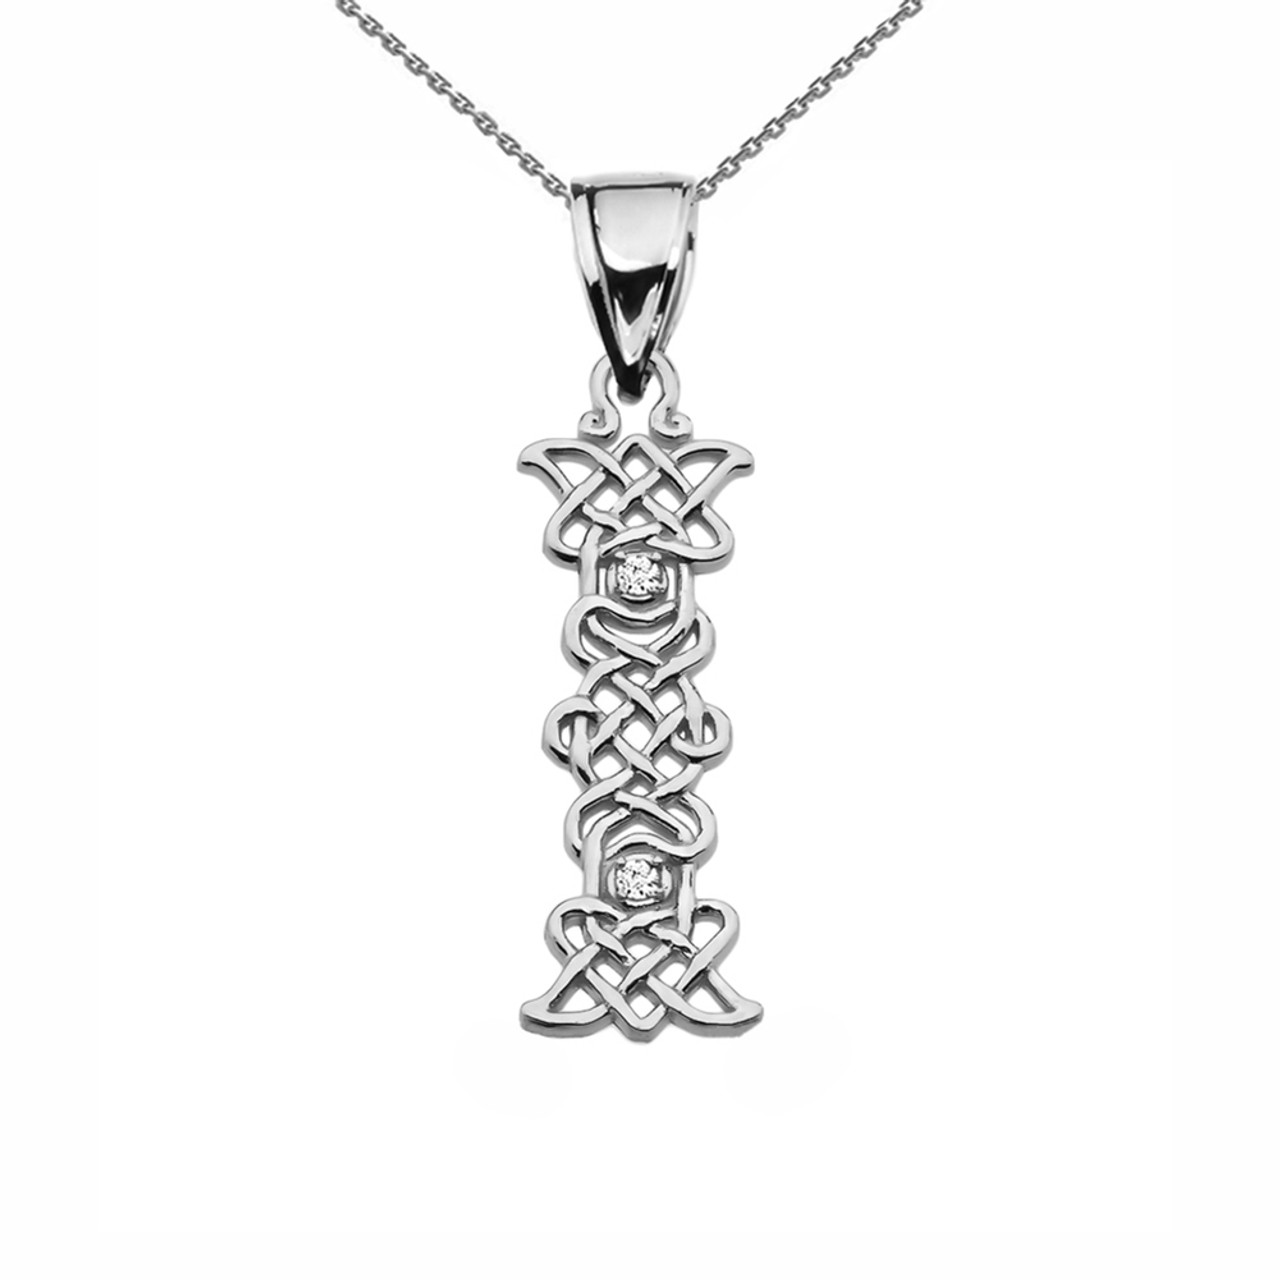 Cz i initial in celtic pattern sterling silver pendant necklace i initial in celtic knot pattern sterling silver pendant necklace with cz mozeypictures